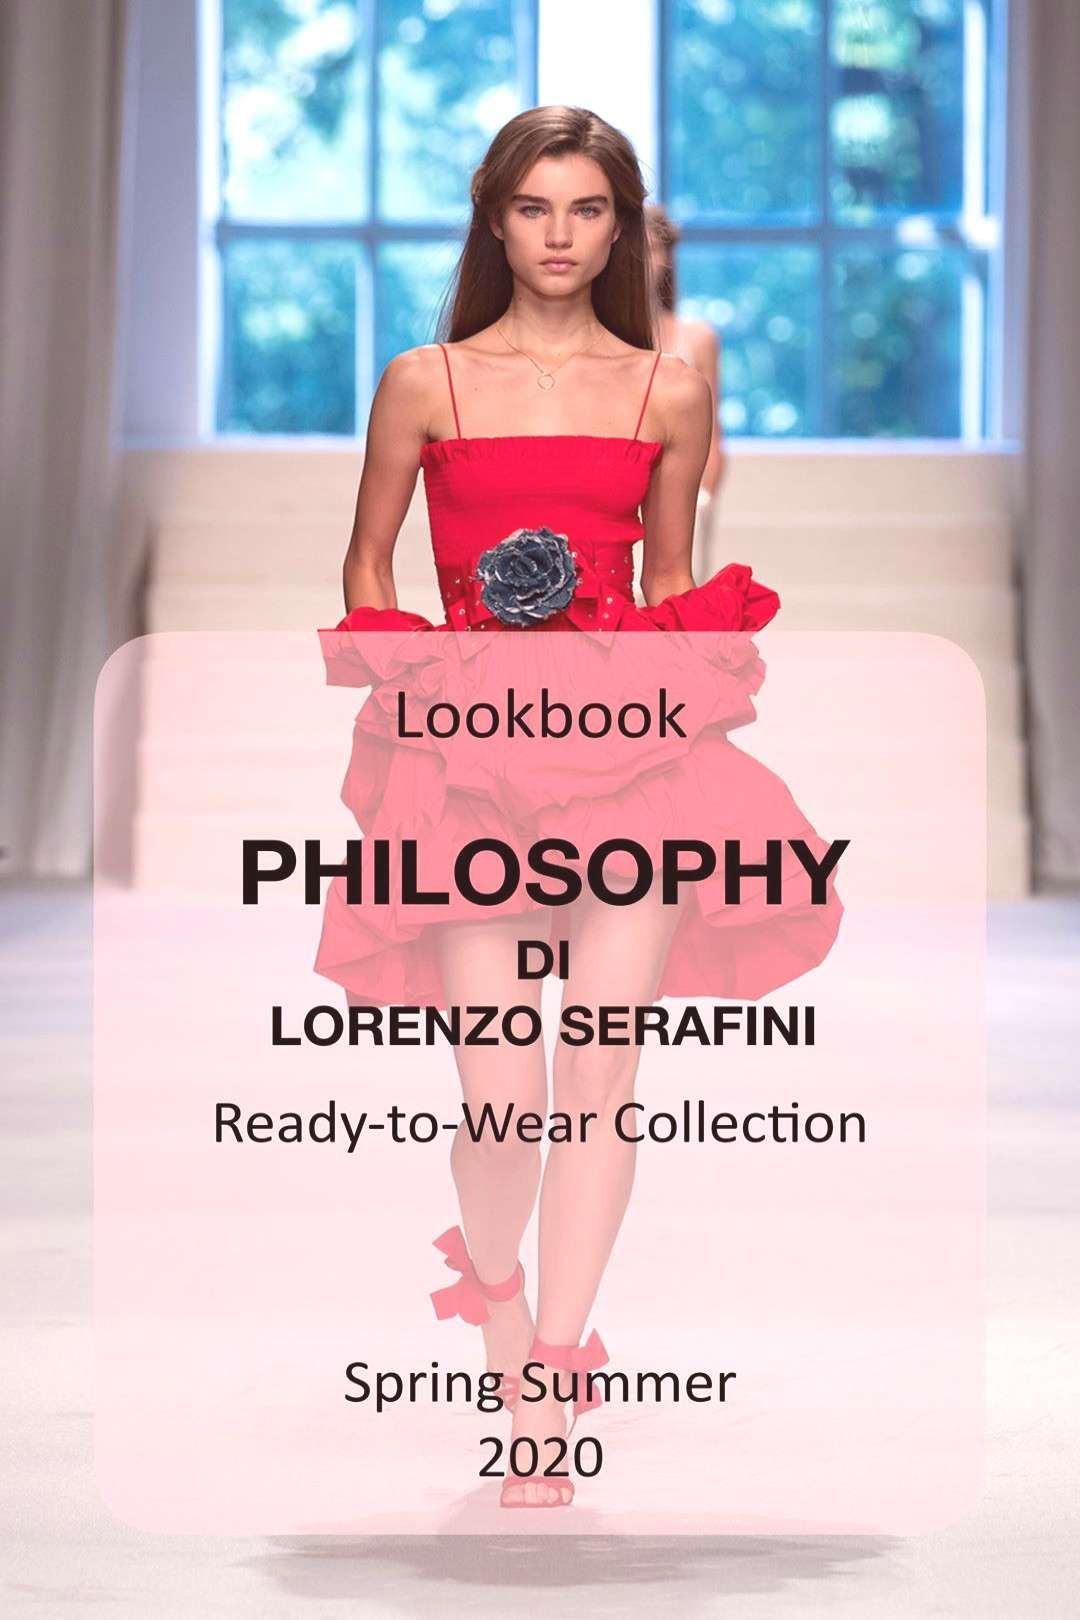 #readytowear #collection #philosophy #lookbook #spring #summer #2020 #by Lookbook Spring Summer 2020 ReadytoWear Collection by PHILOSOPHY You can find Fashion dresses and more on our website.Lookbook Spring Summer 2020 ReadytoWear Collec...